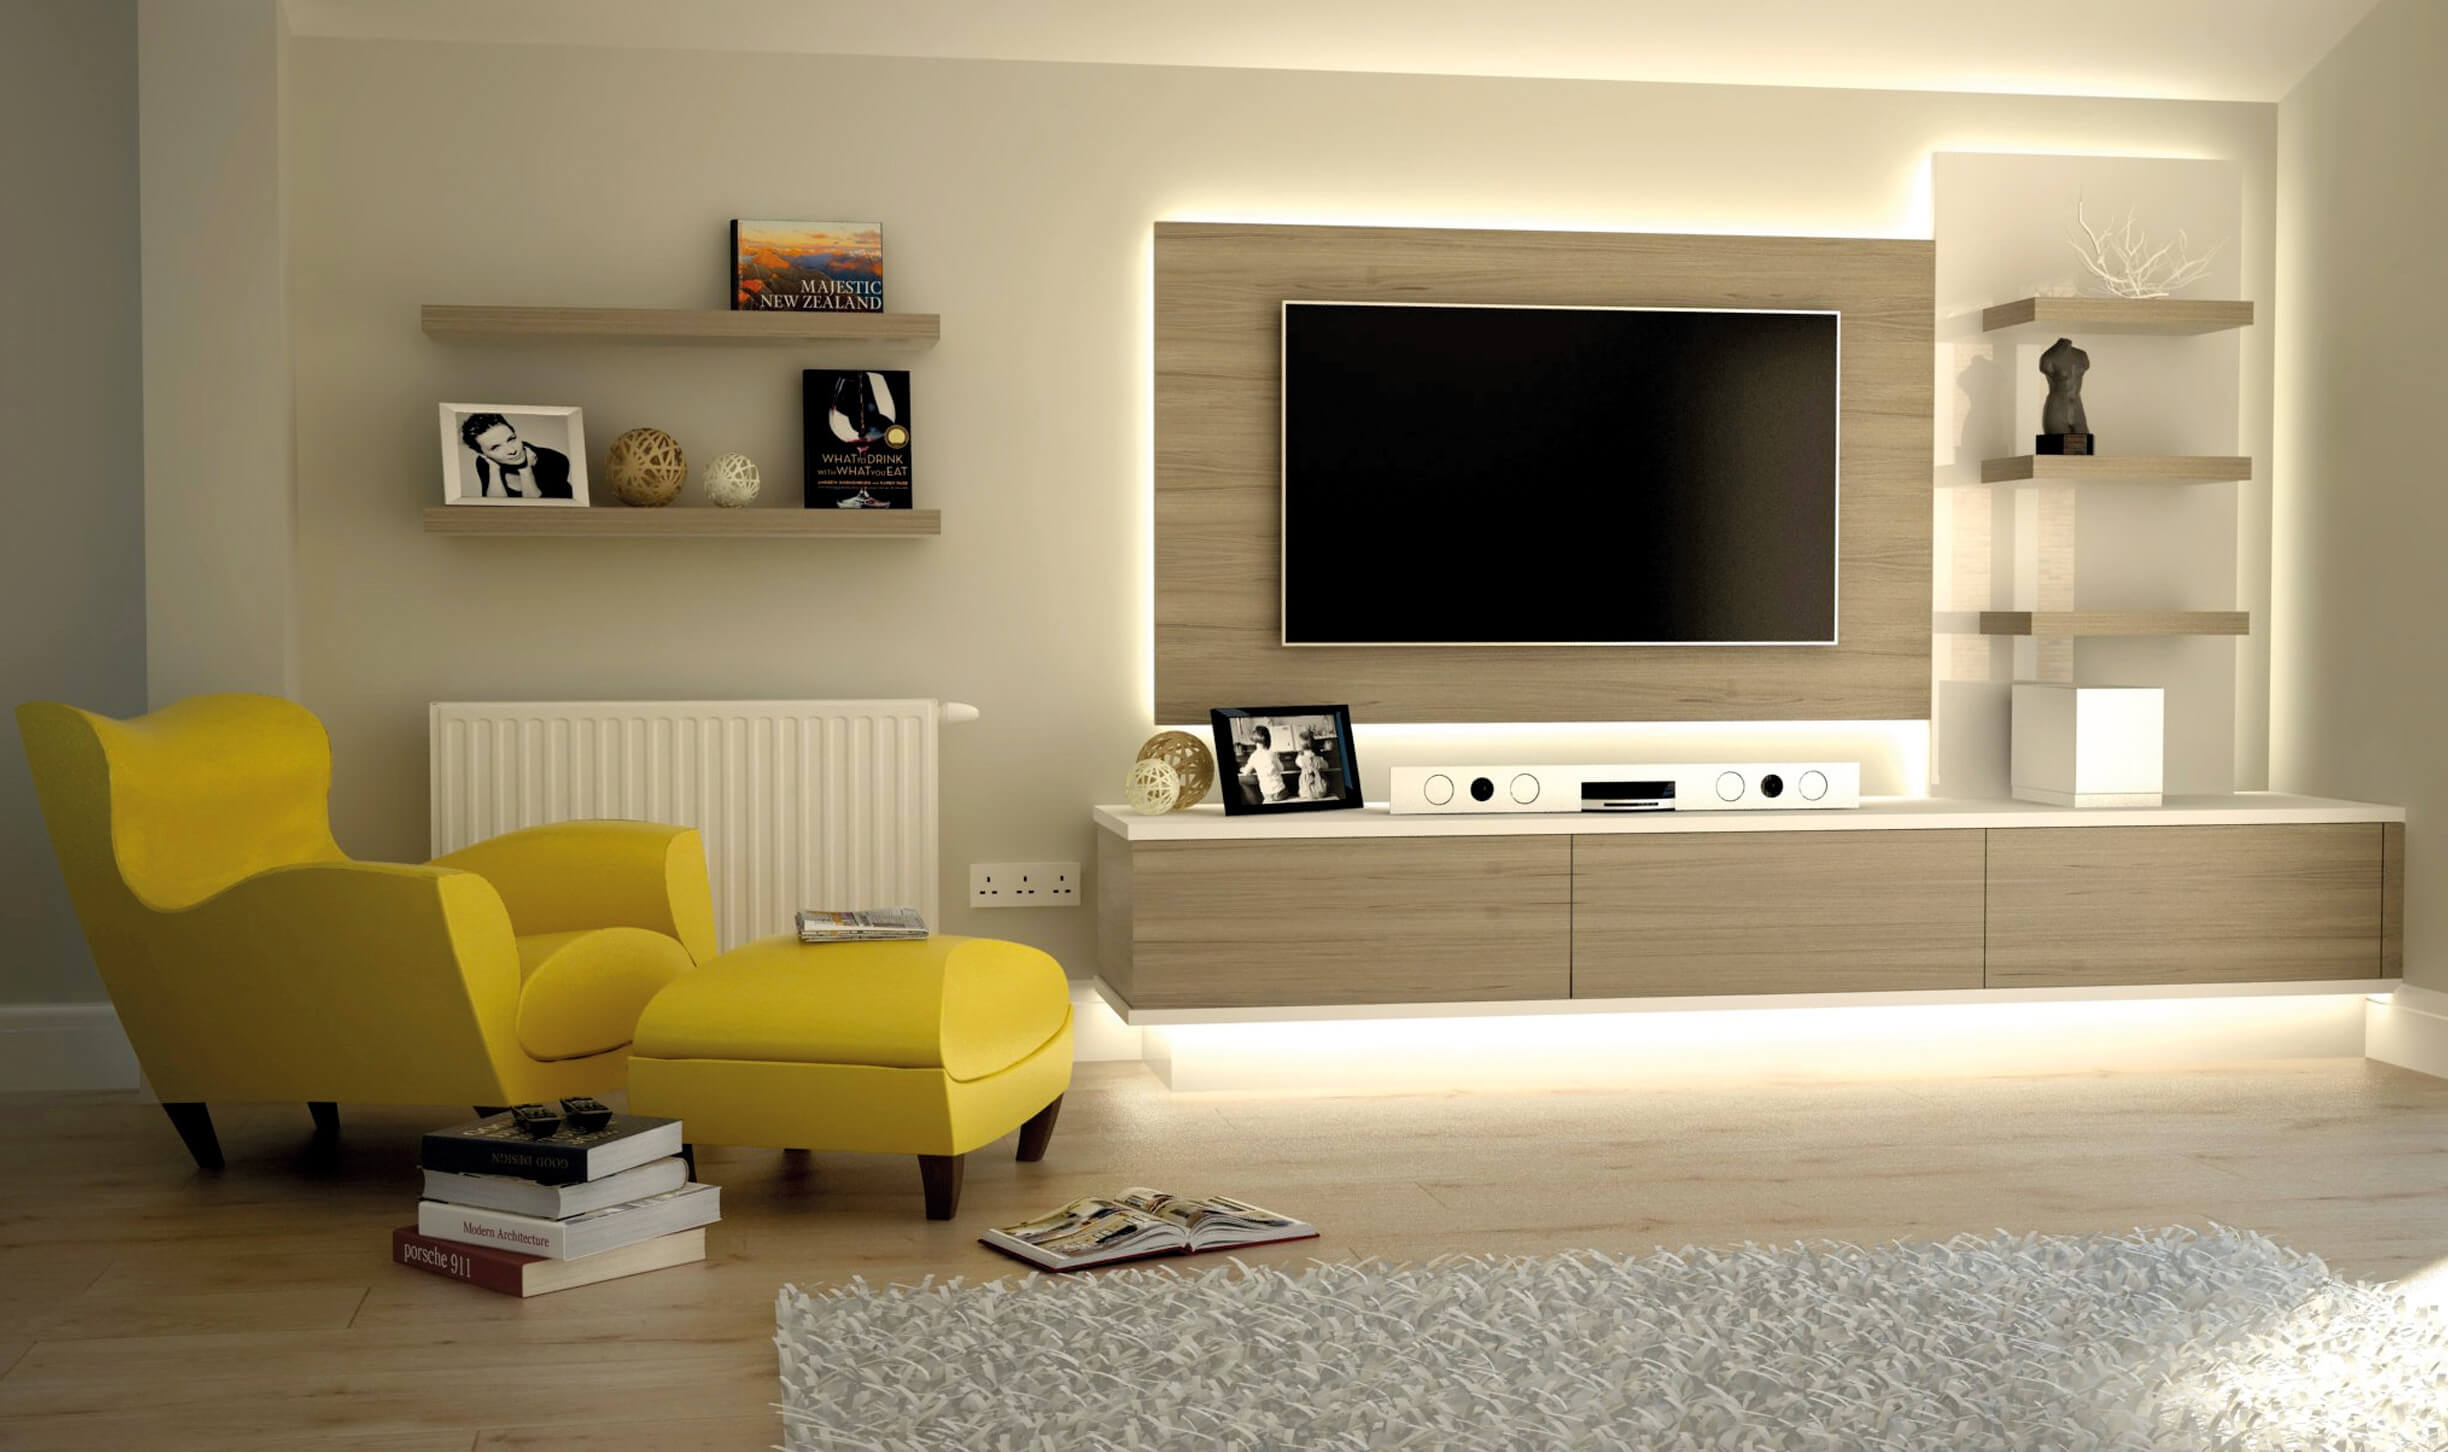 Bespoke Tv Cabinets Bookcases And Storage Units For Over 50 Regarding Fitted Living Room Cabinets (Image 2 of 15)